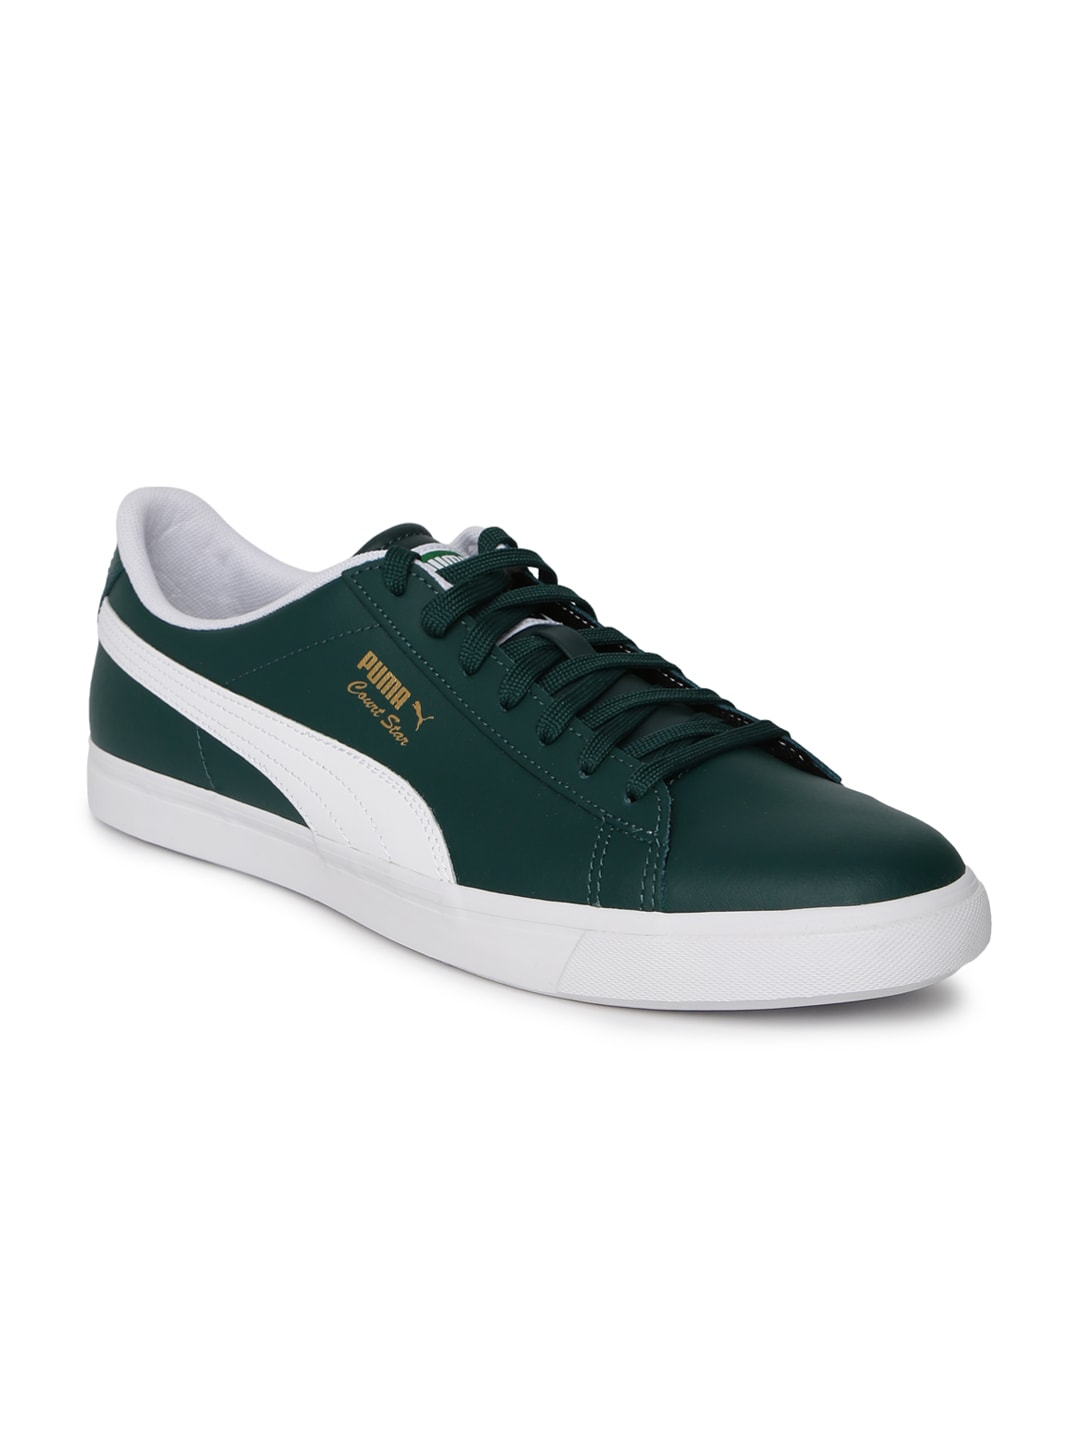 168531695b30 Men s Puma Shoes - Buy Puma Shoes for Men Online in India